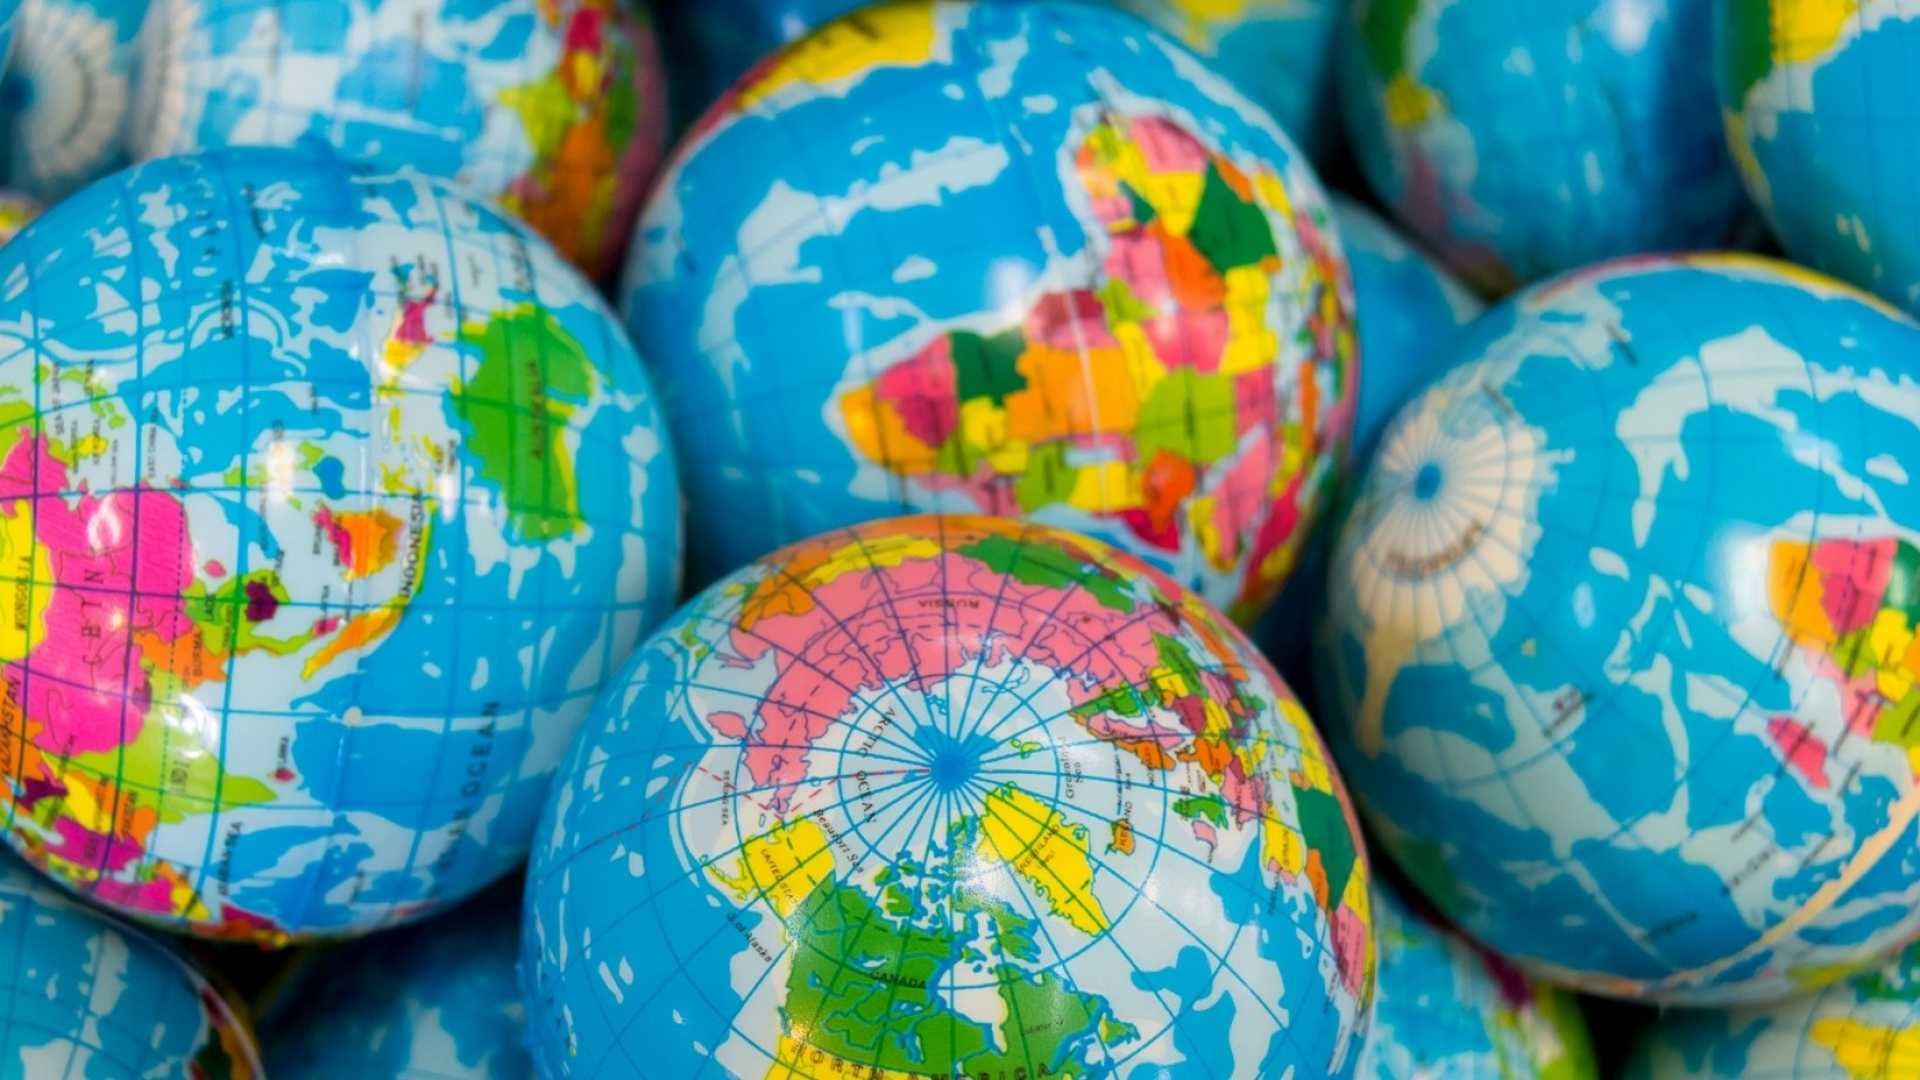 Thinking About Taking Your Startup Global? Make Sure These 3 Things Are Ready Right Now